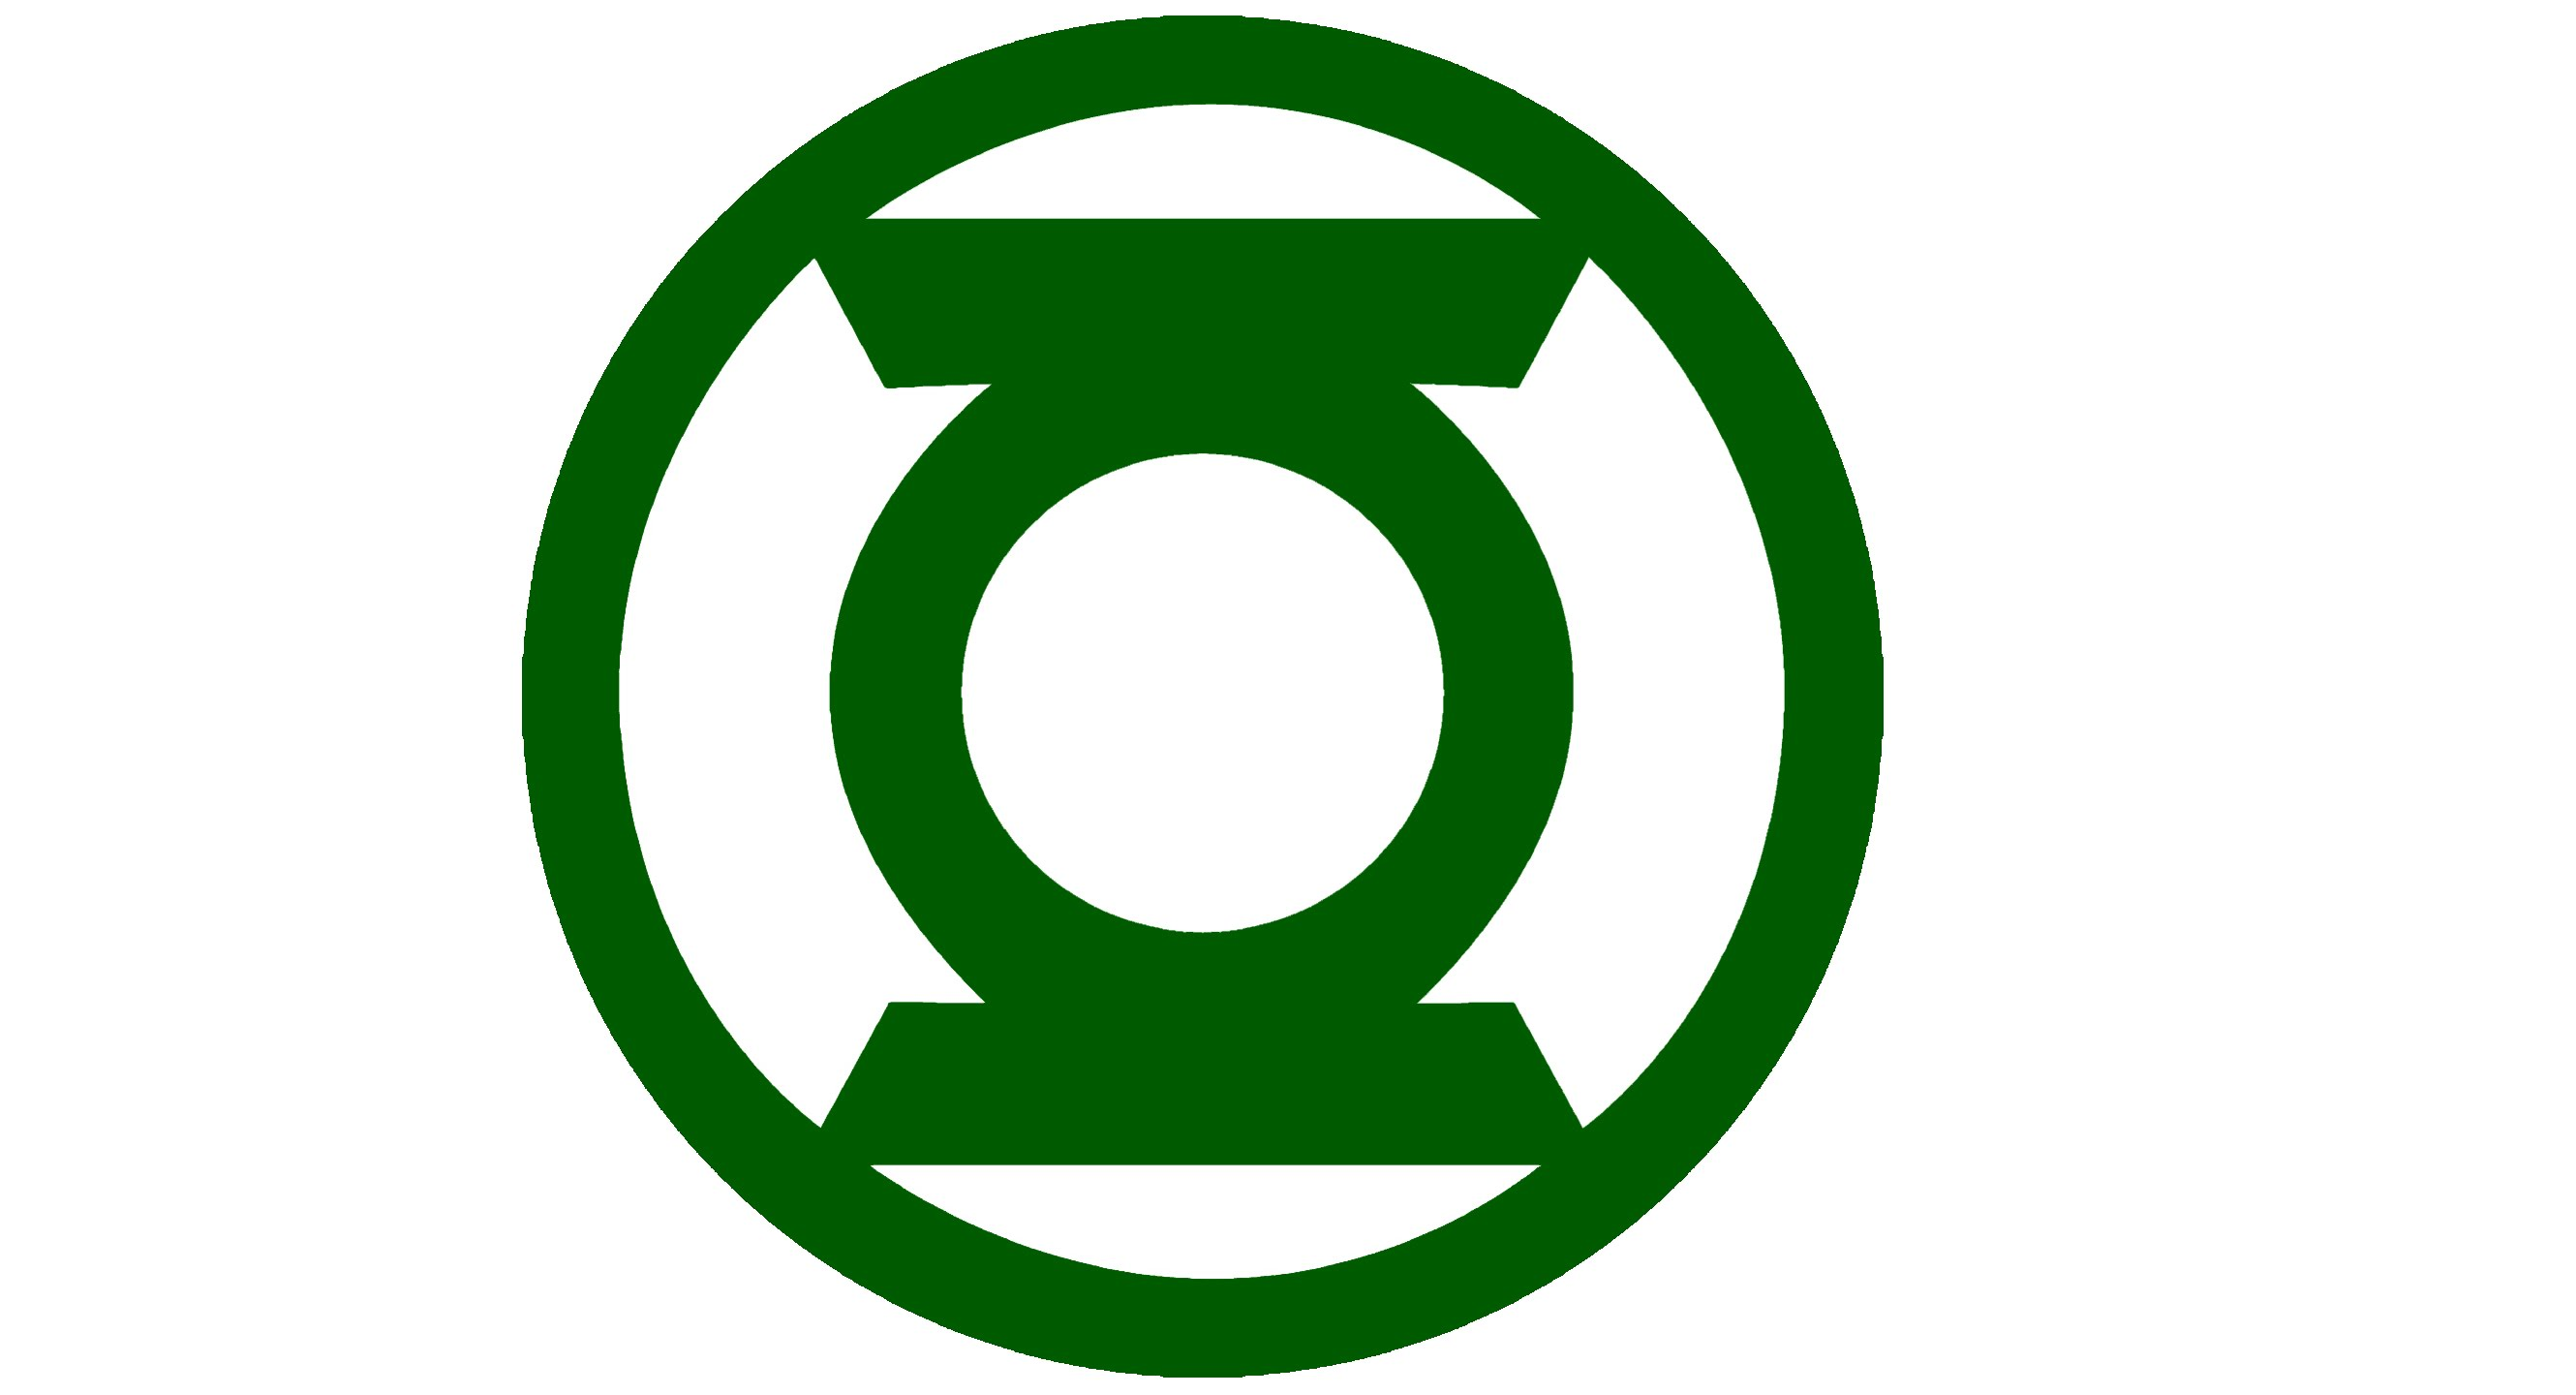 Green Lantern Logo Drawing At Getdrawings Free For Personal